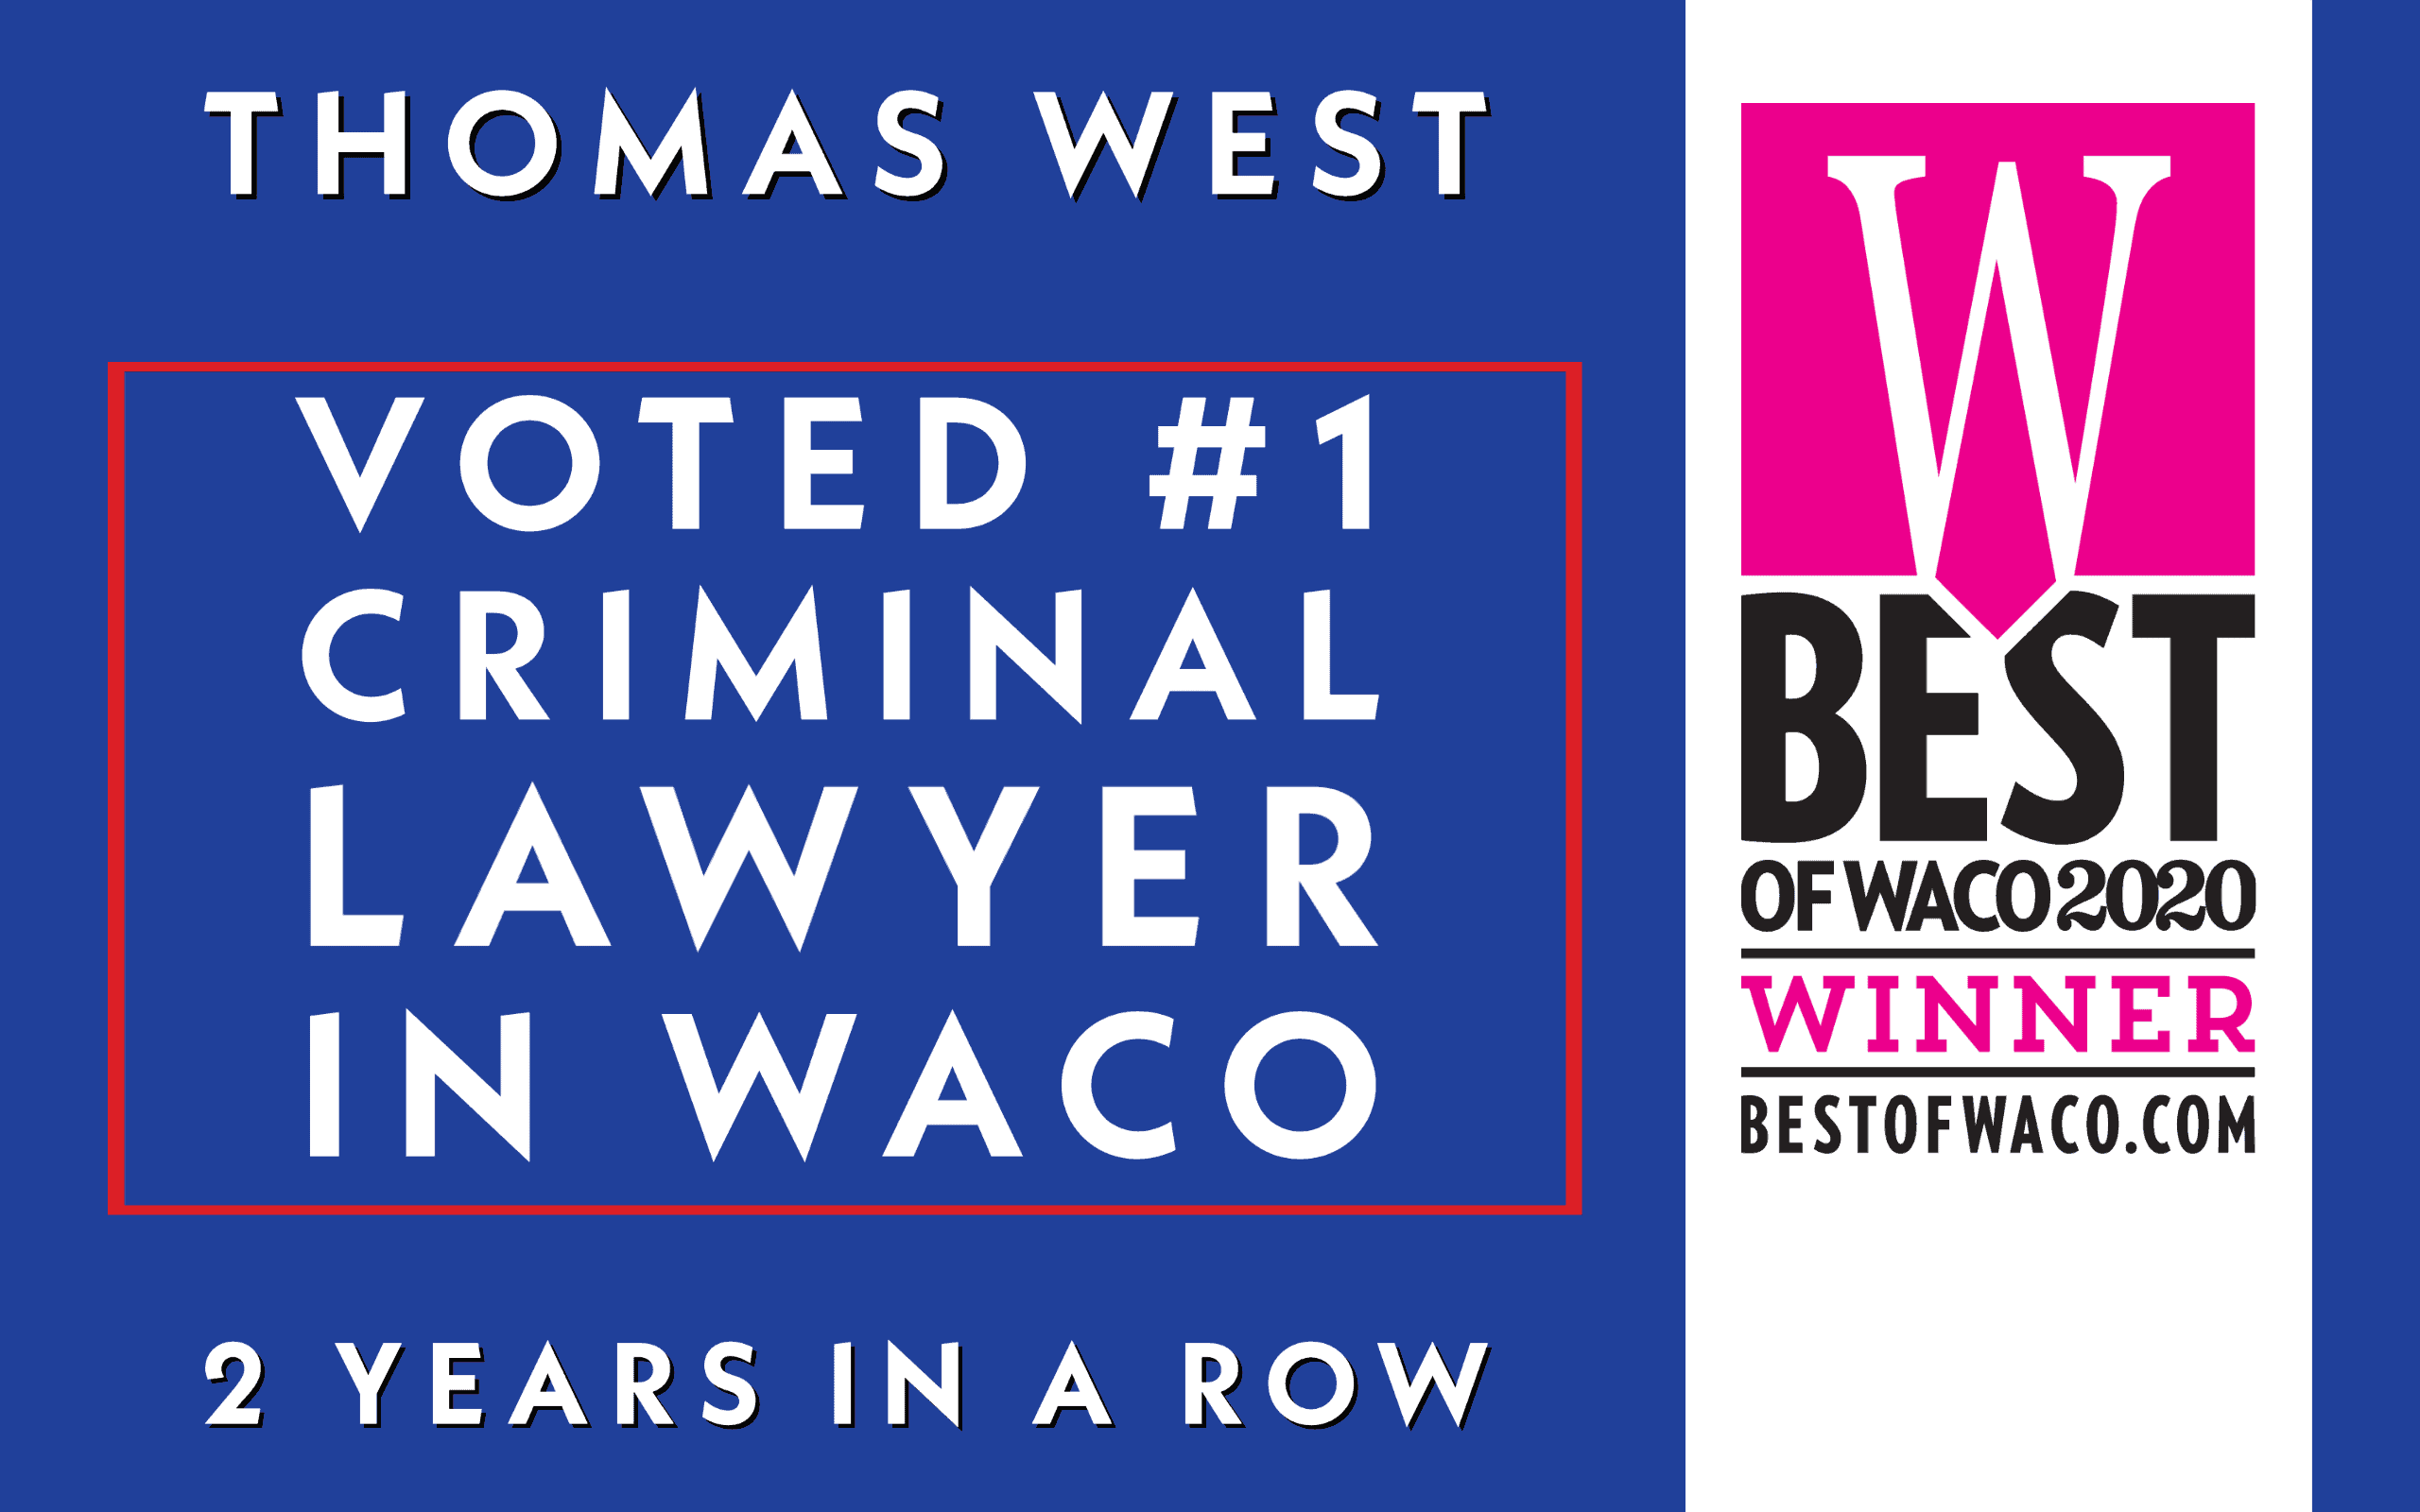 Thomas-West-Best-Of-Waco